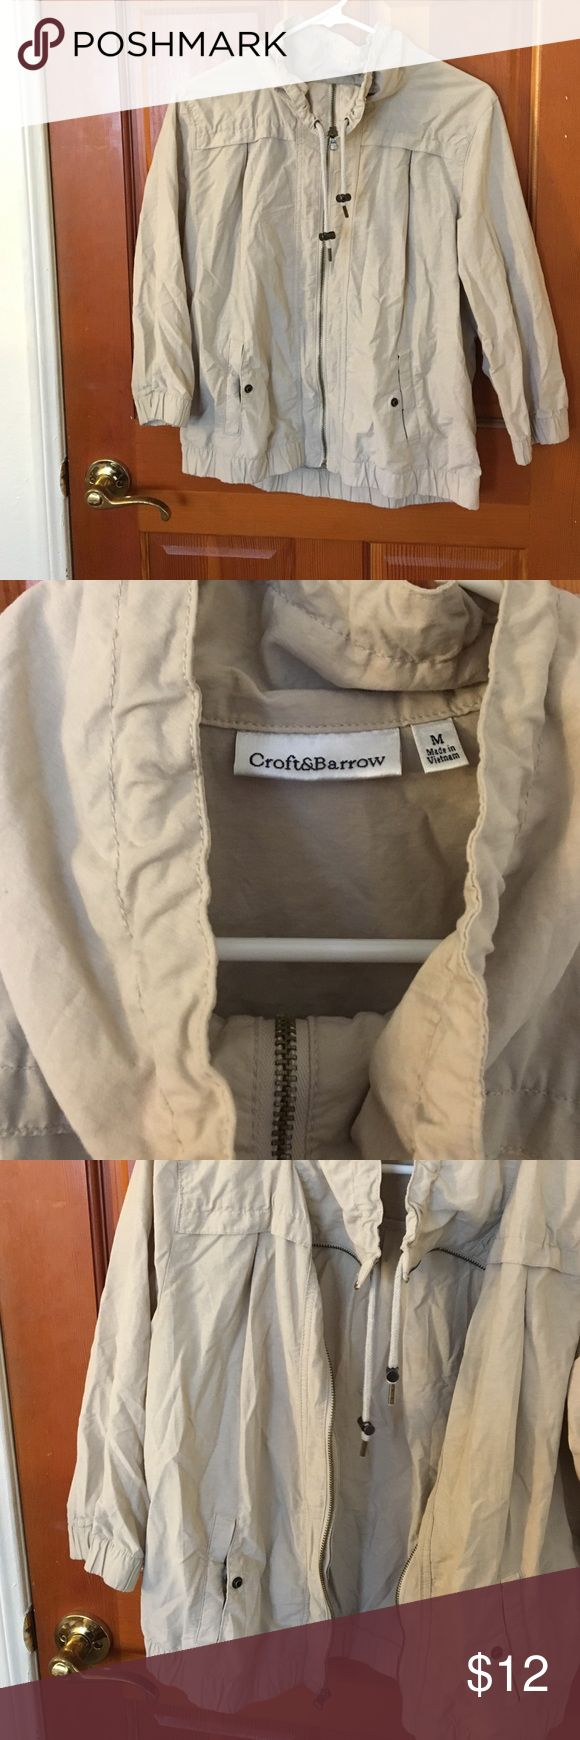 Short Zip Up Jacket Soft Beige zip up jacket great to layer with a dress or top for the fall! Zip up with snap pockets and adjustable scrunch neck croft & barrow Jackets & Coats Utility Jackets